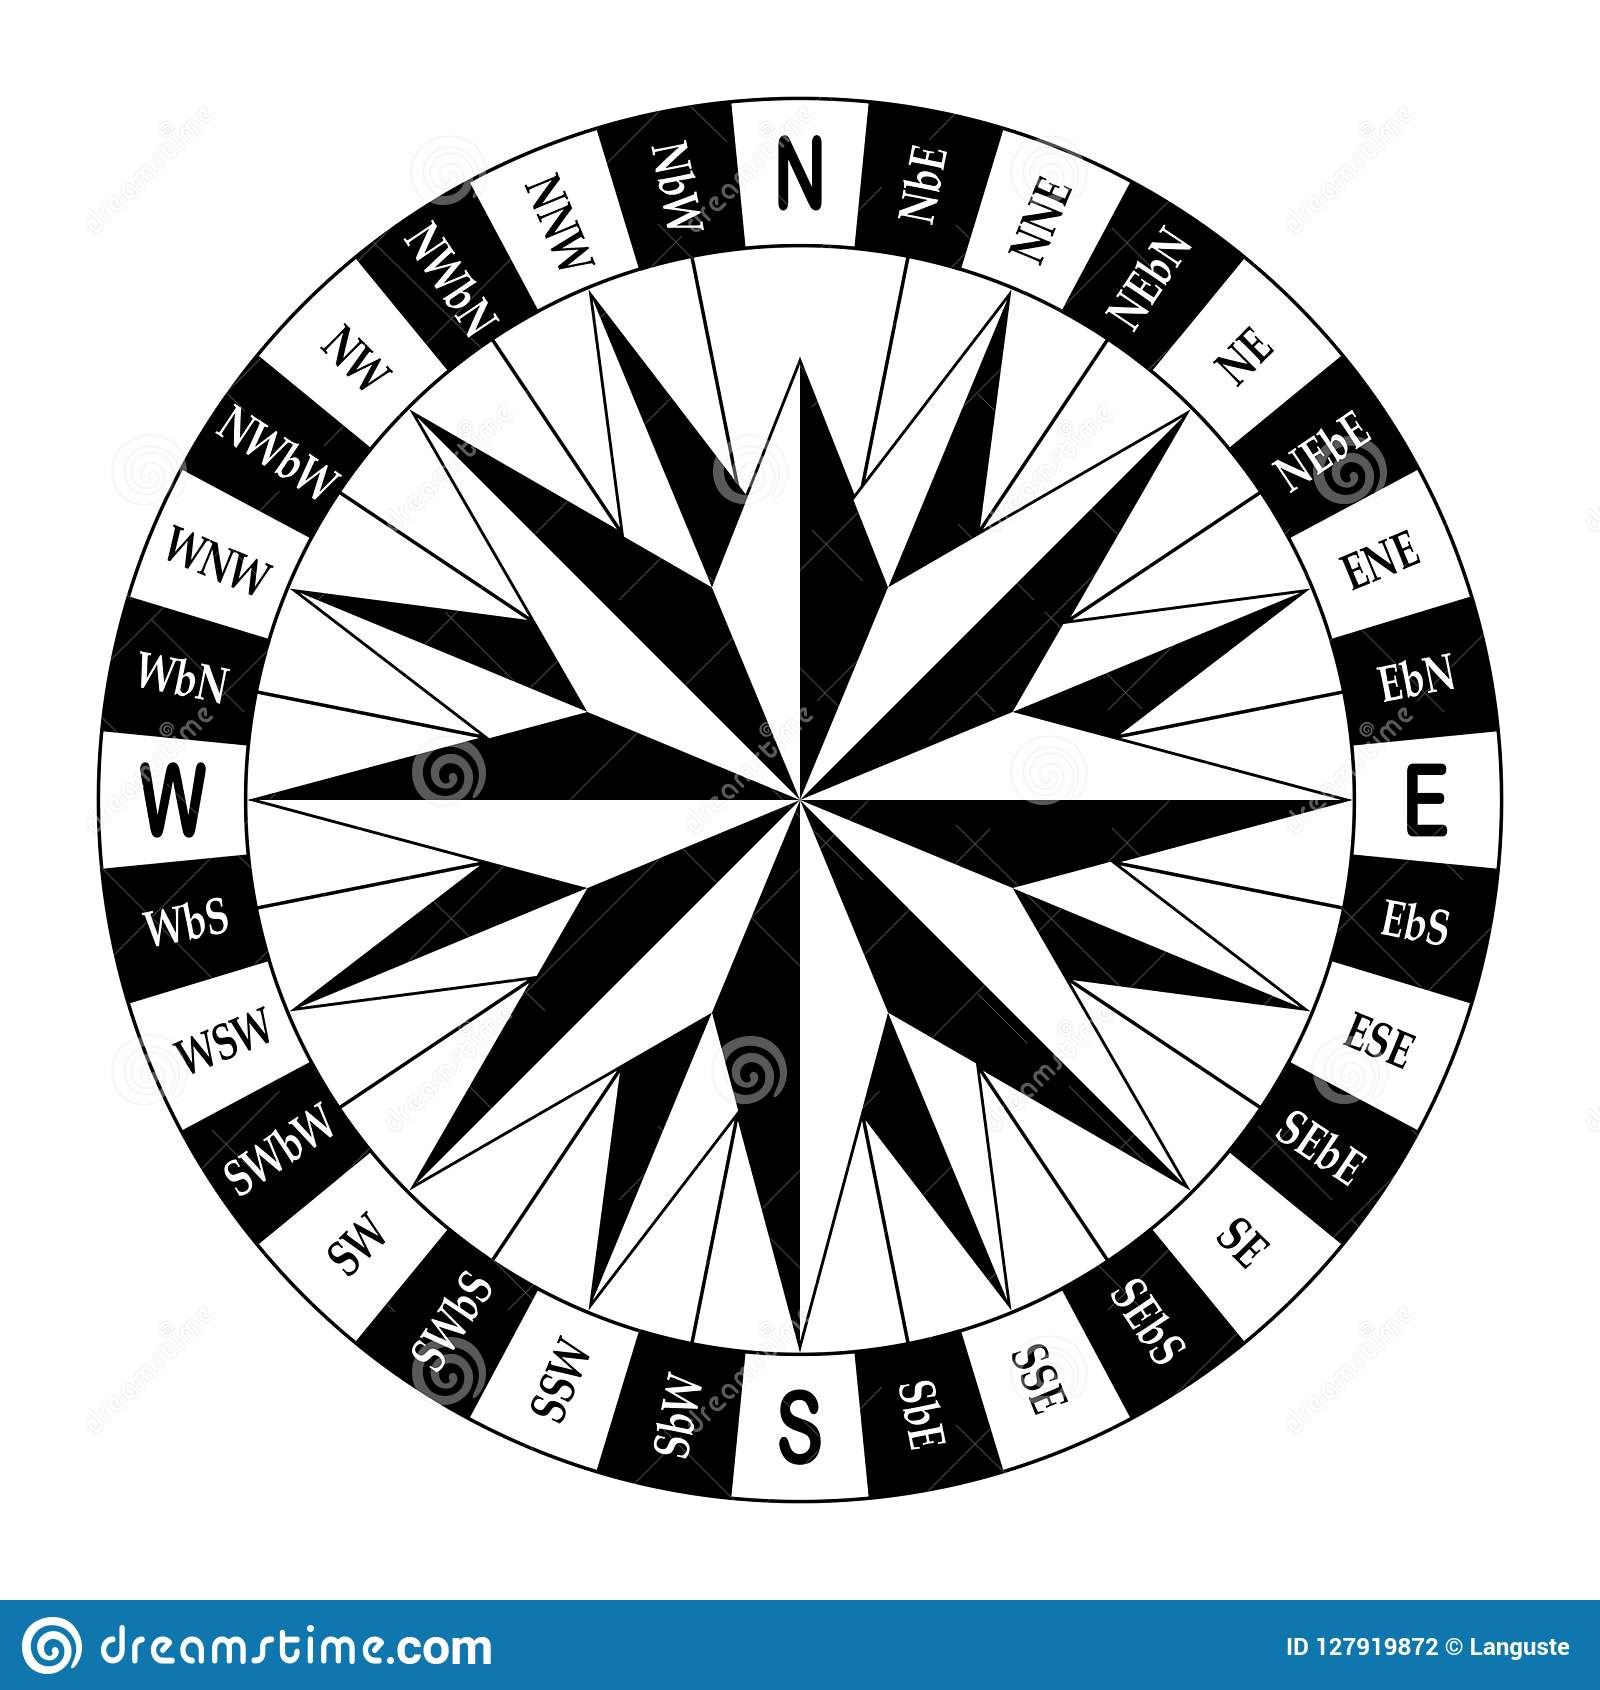 Compass Rose Vector With All Wind Directions On An